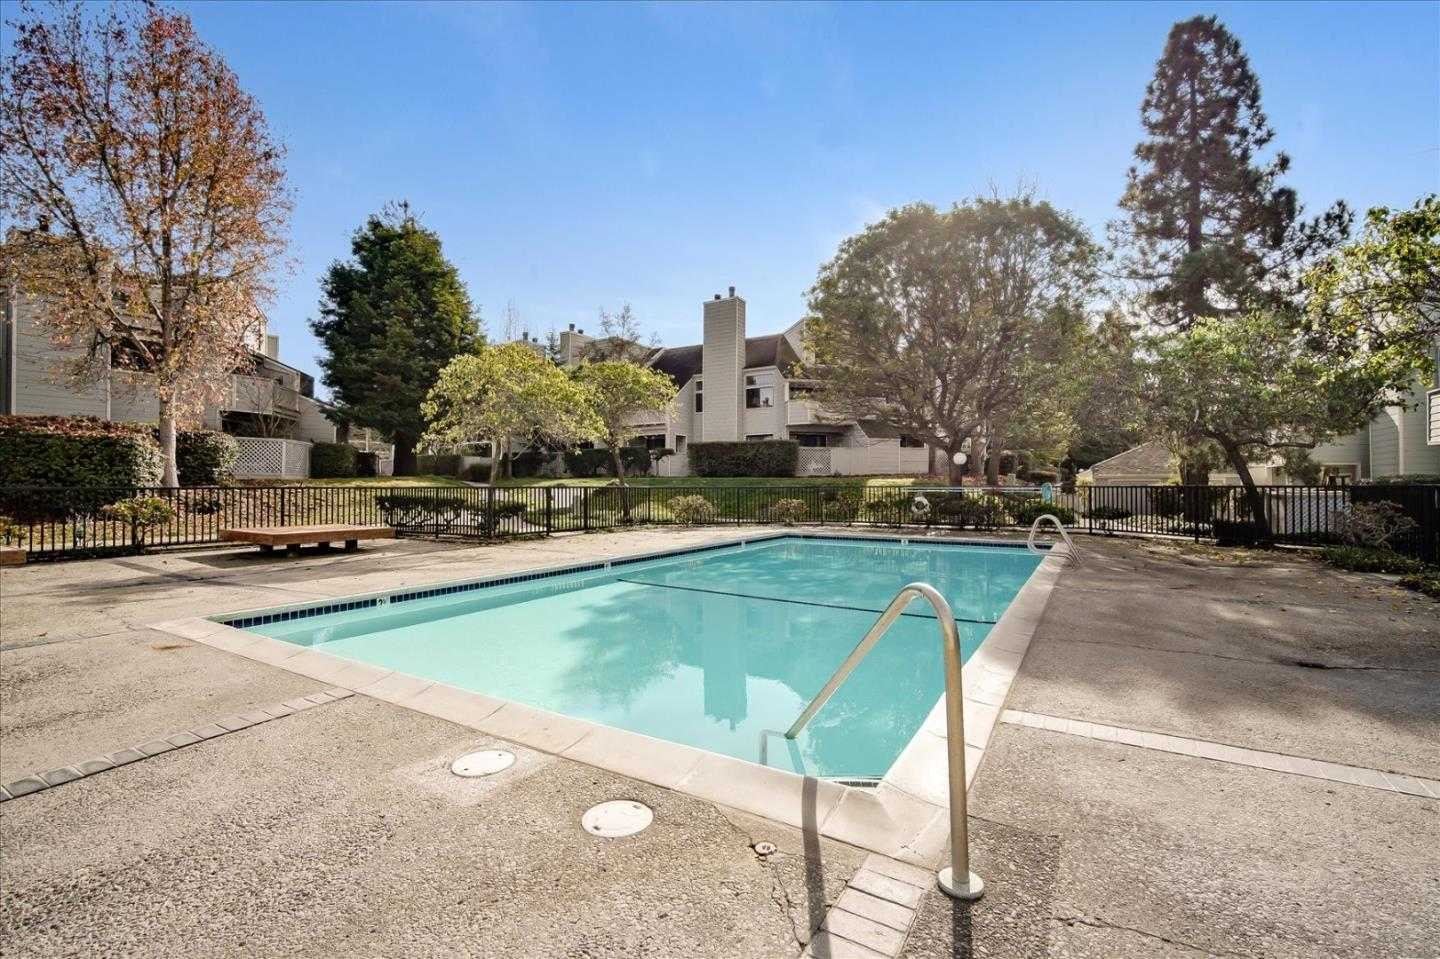 $599,000 - 2Br/2Ba -  for Sale in Aptos